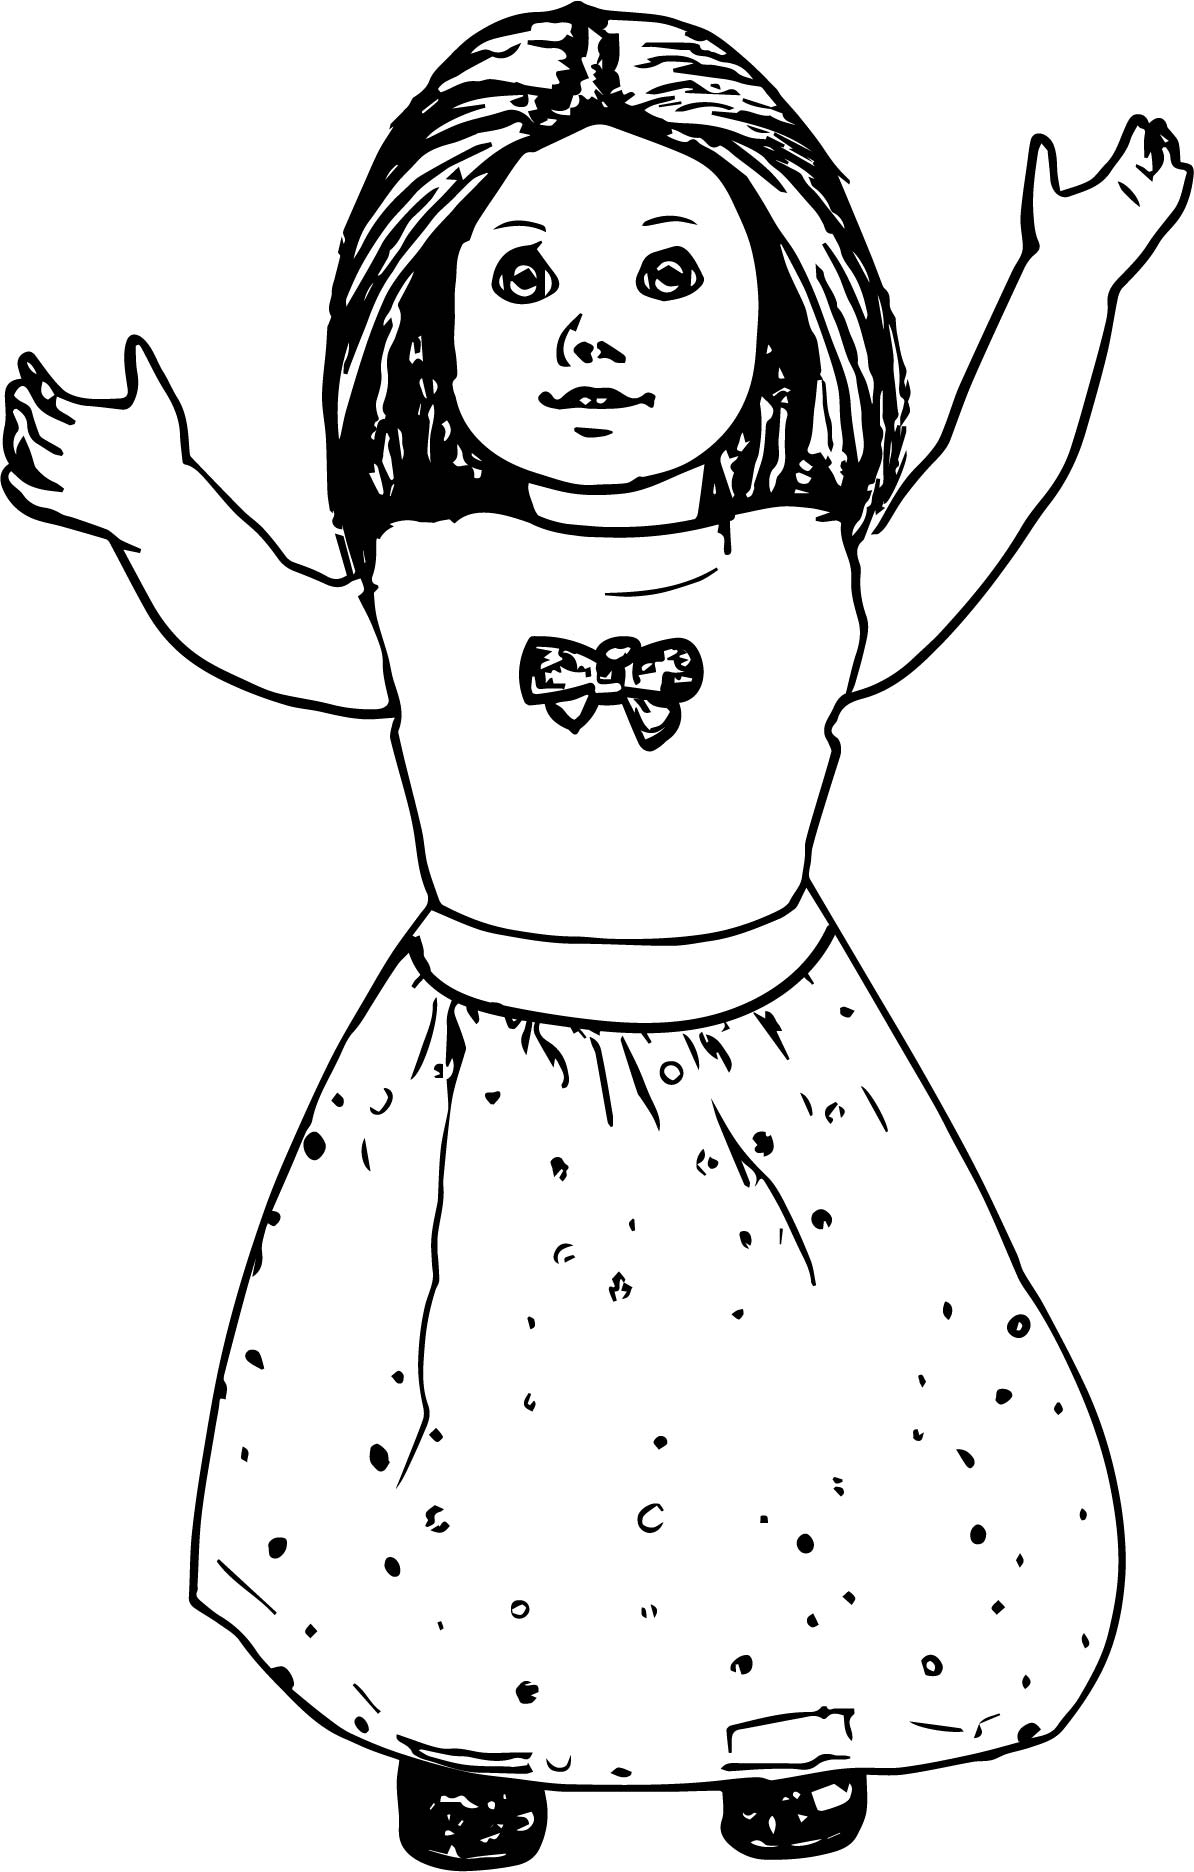 coloring pages american girl american girl coloring pages best coloring pages for kids coloring girl pages american